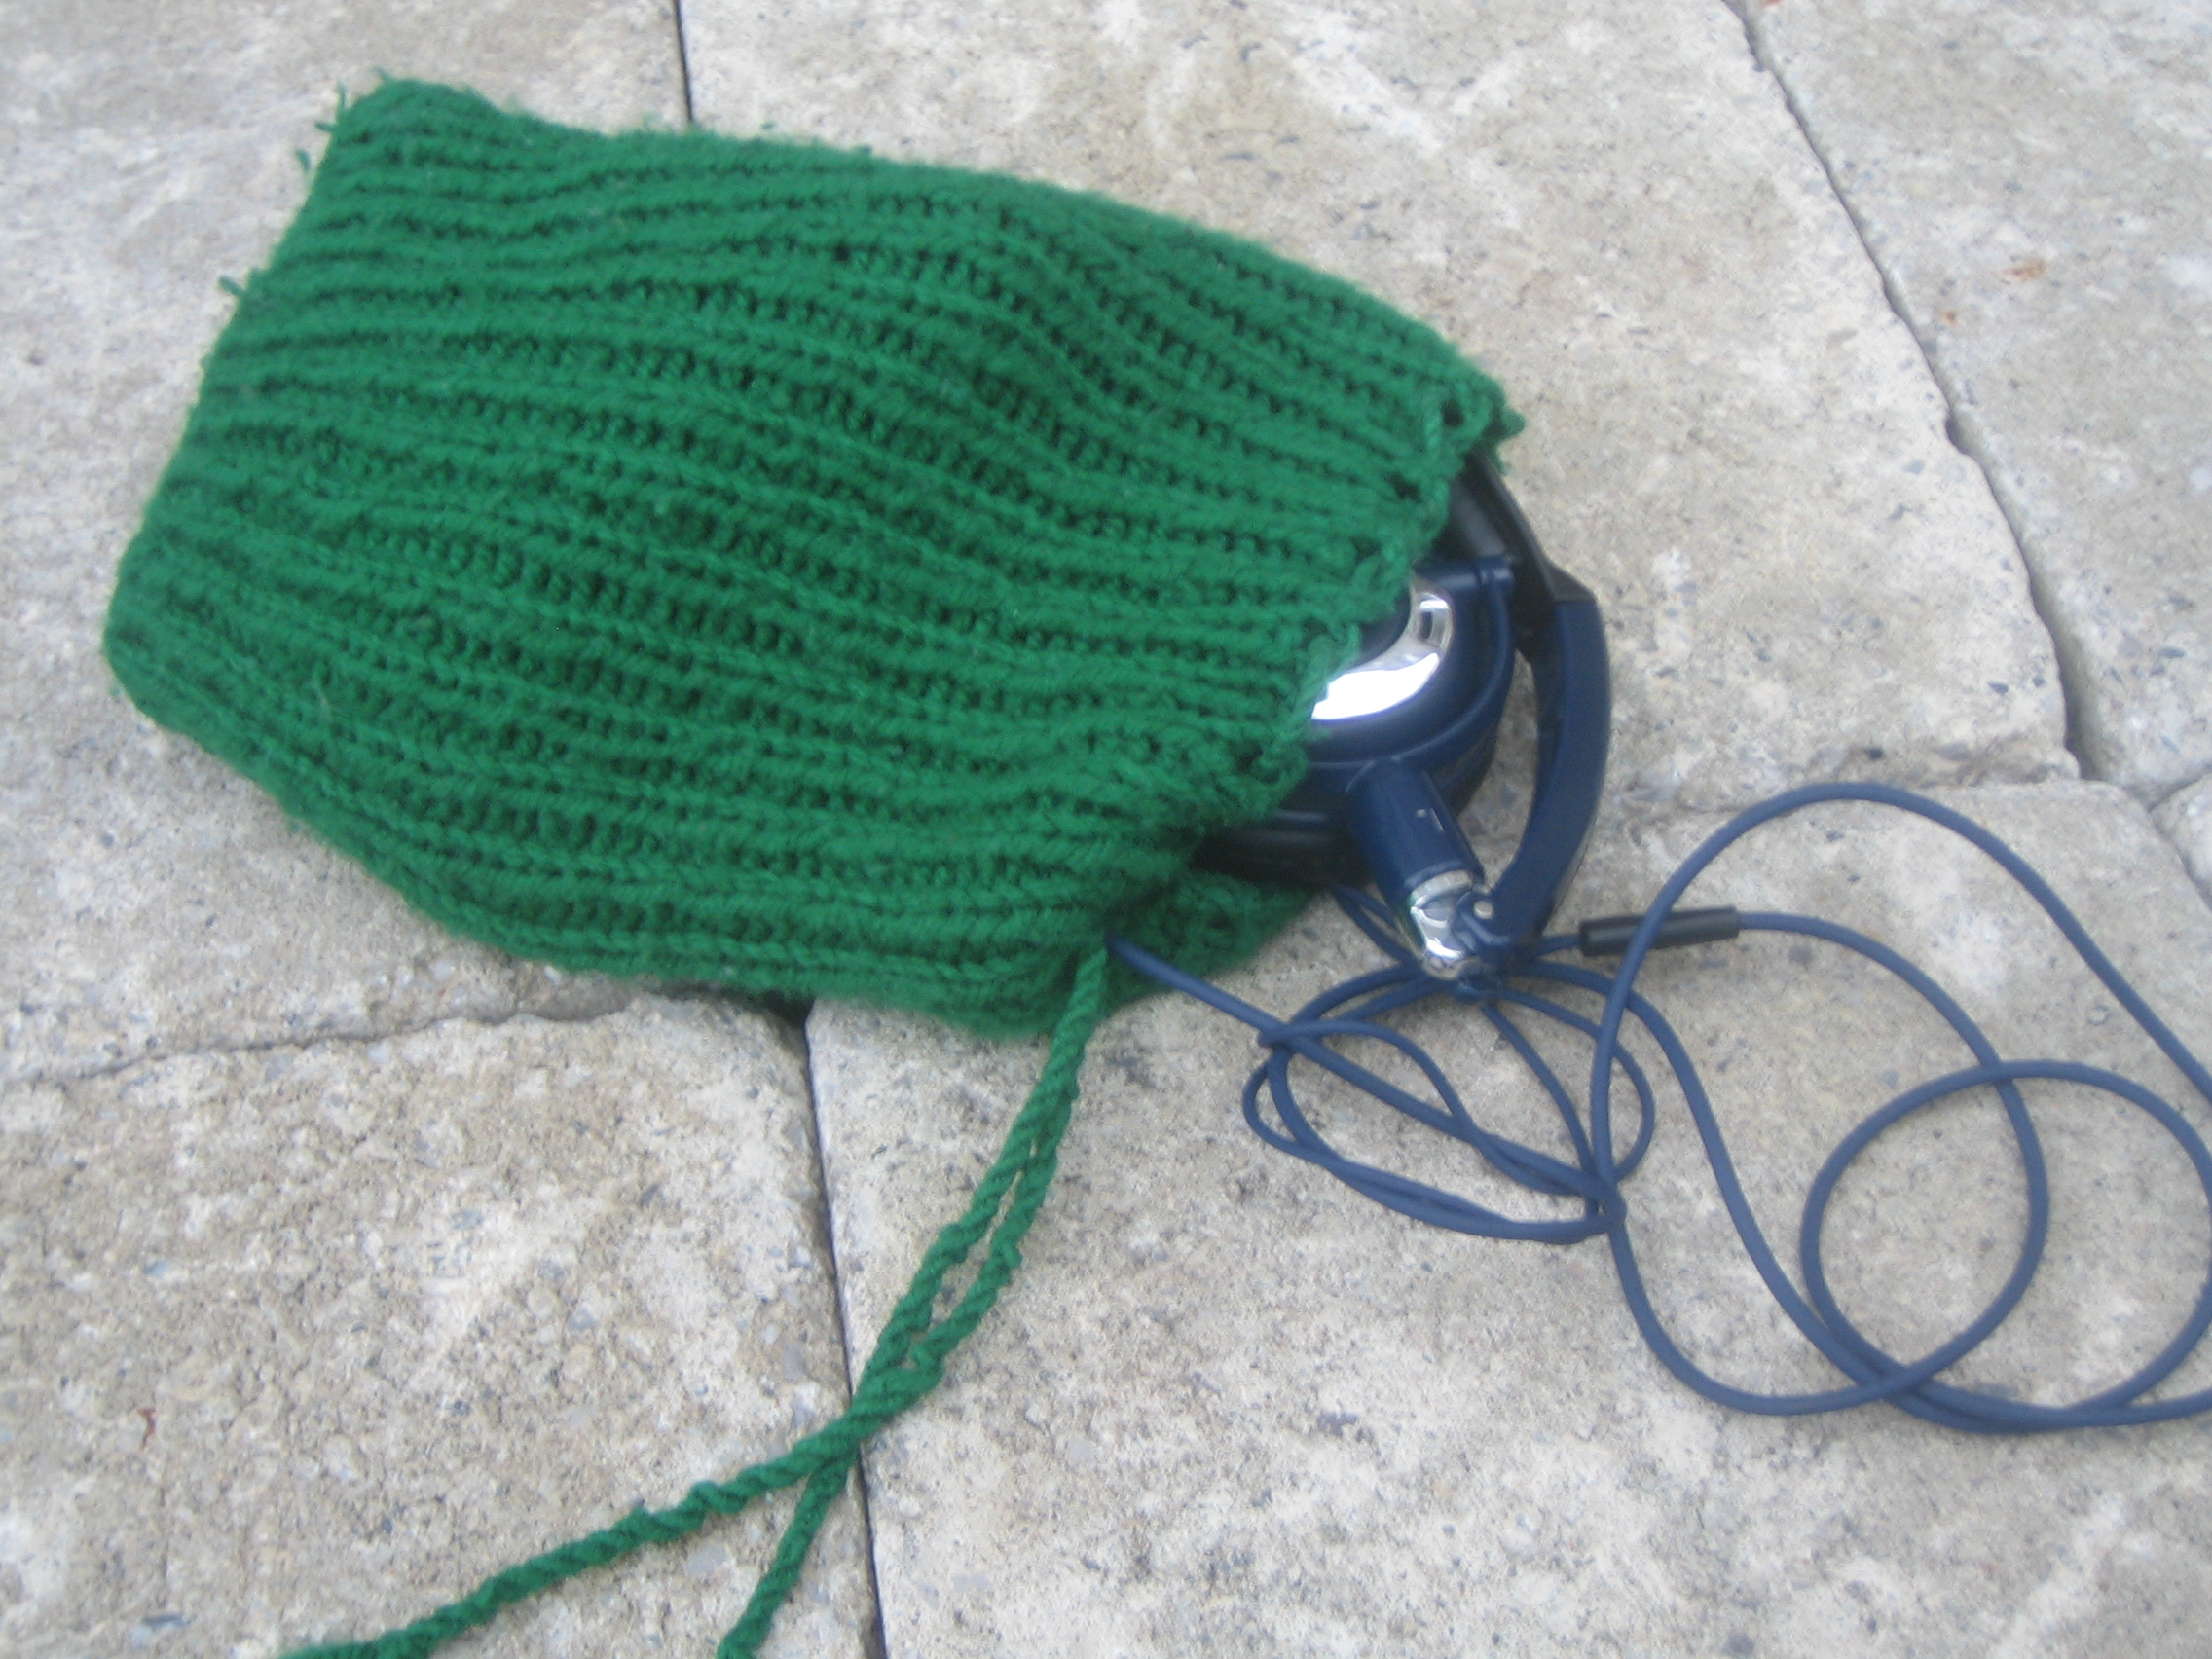 A small green bag done in 1 by 1 ribbing, with a twisted cord drawstring and a pair of headphones partially out.